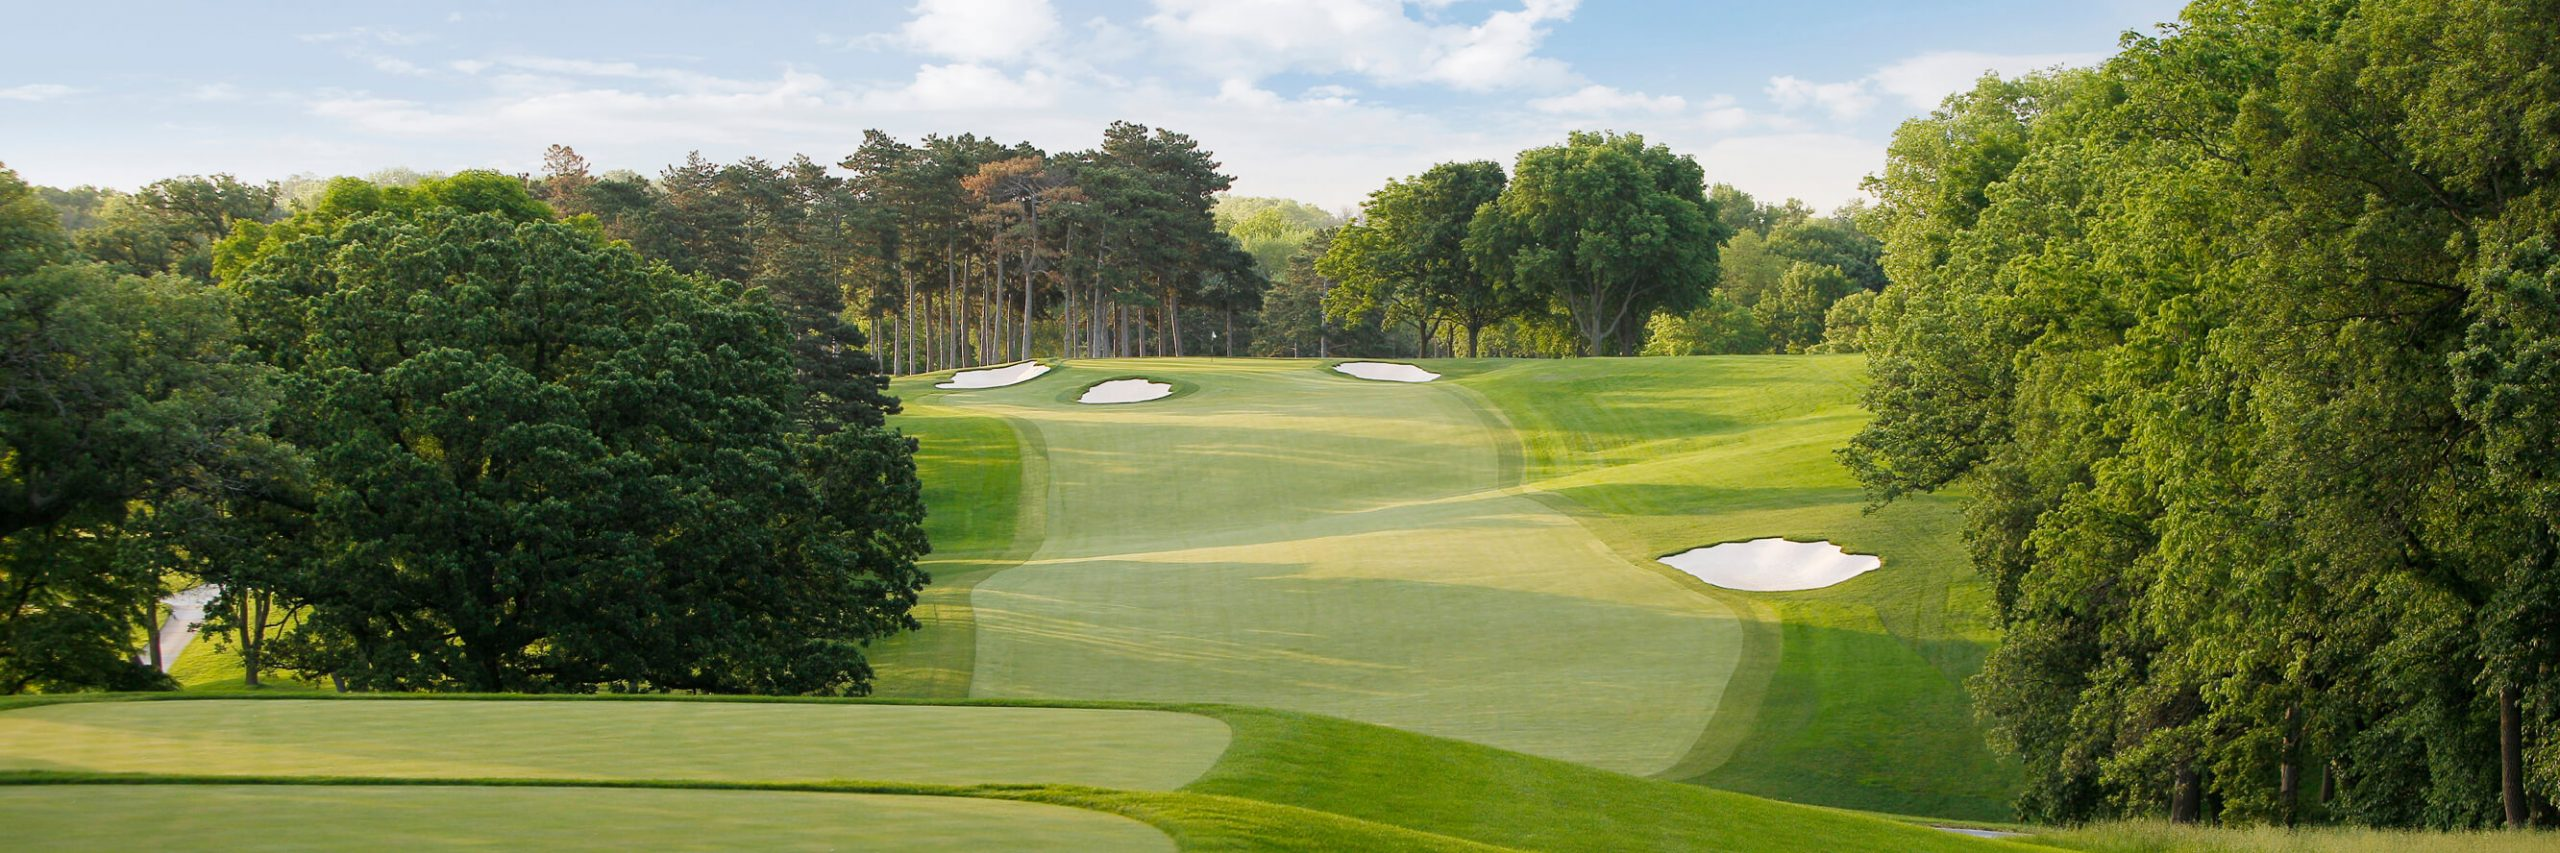 Golf Course Image - Omaha Country Club No. 18